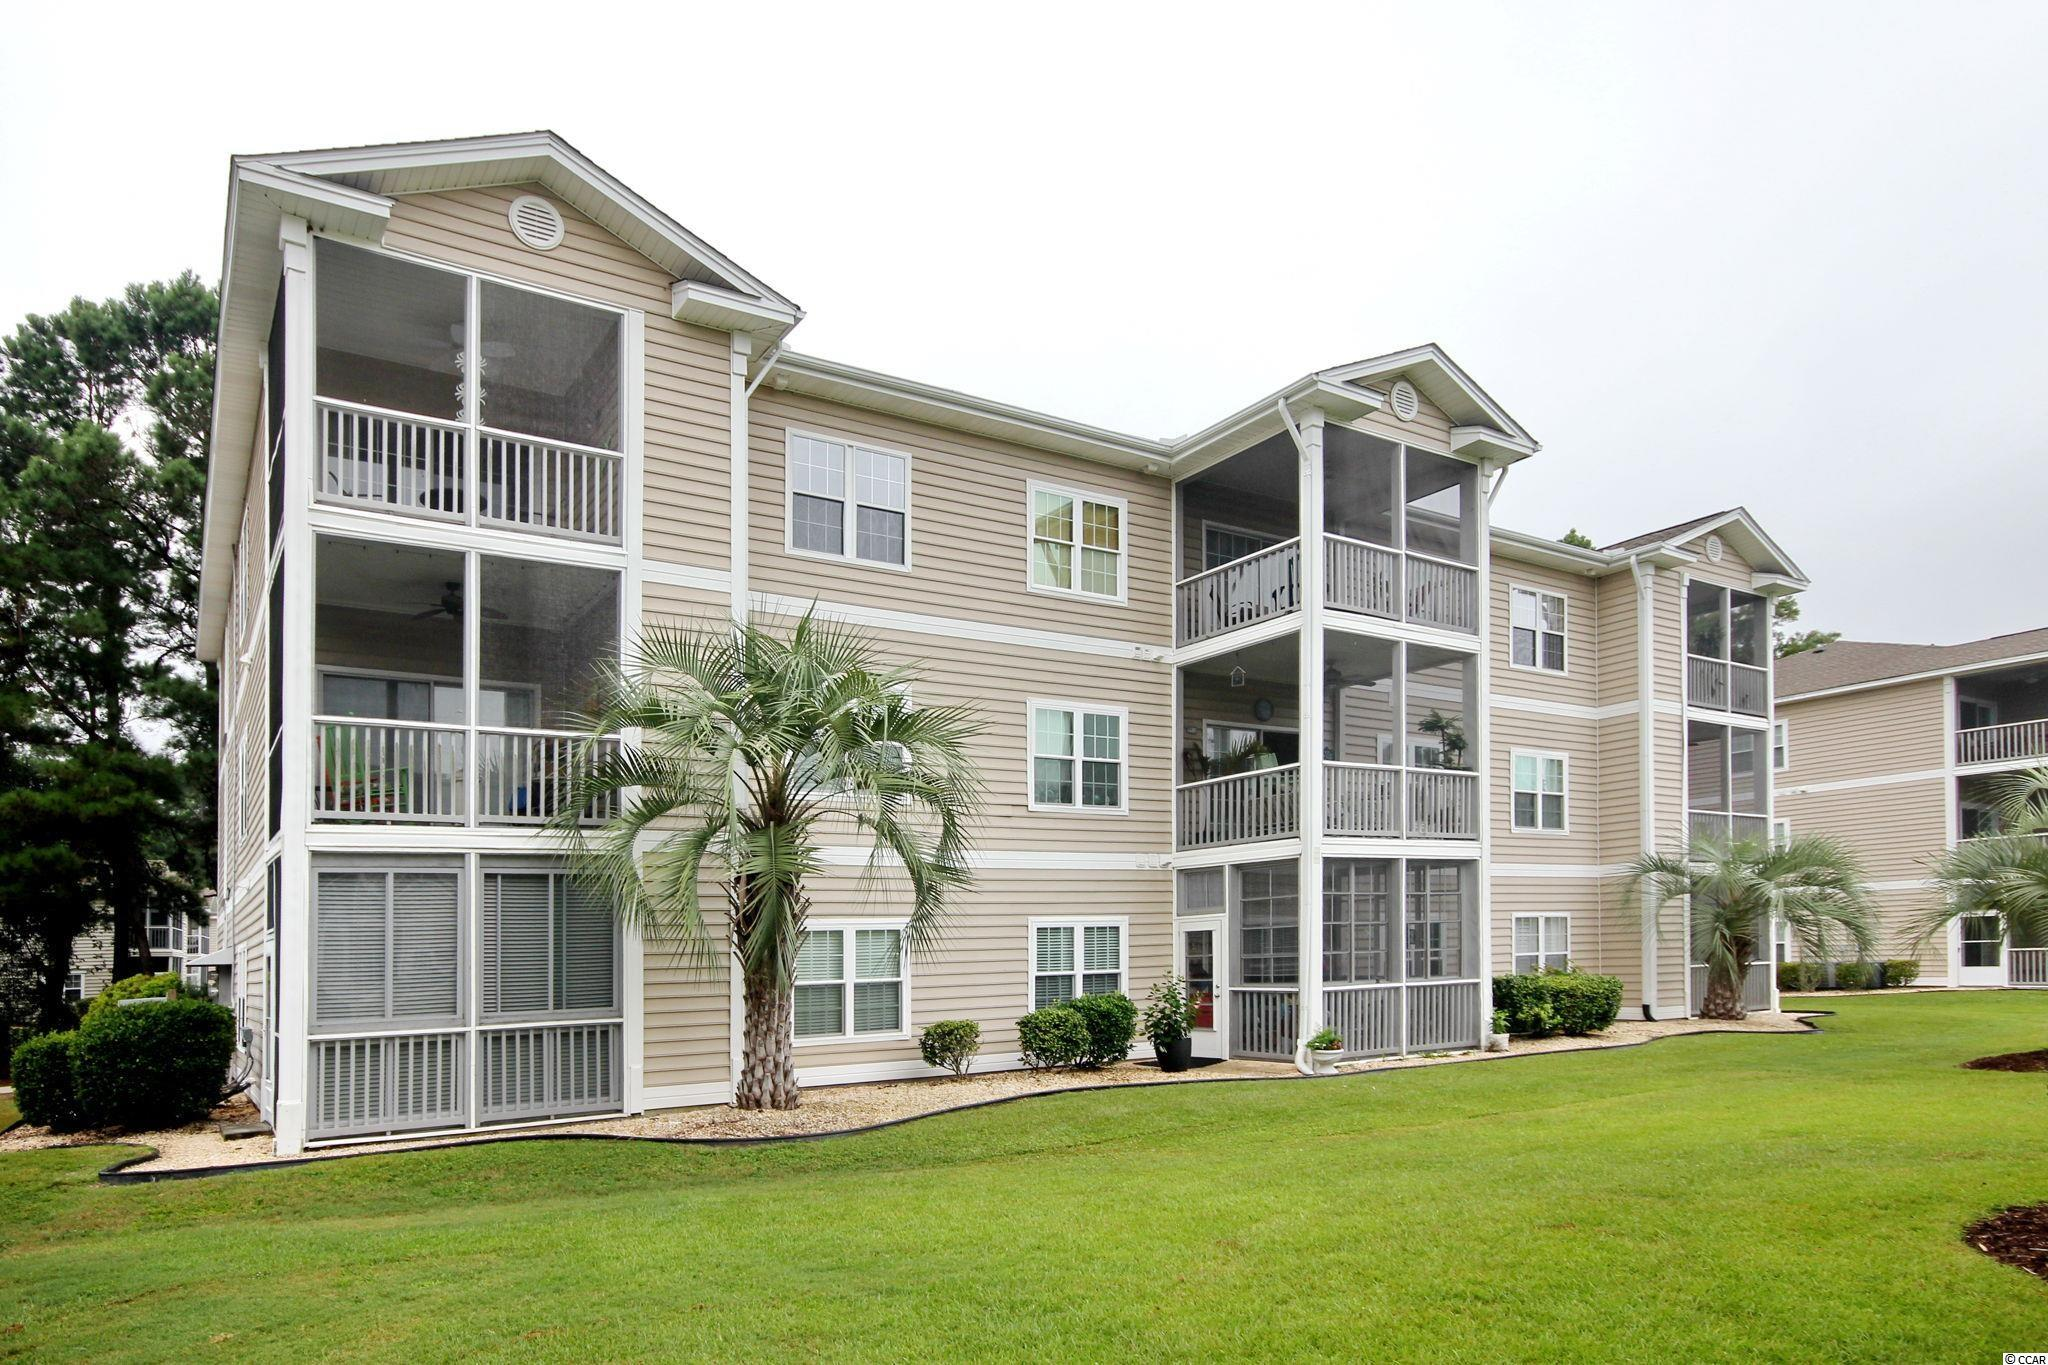 Top floor, end unit and furnished 2-bedroom condo in the desirable community of Sweetwater.  Plenty of natural light in this open floor plan with a large screened porch overlooking the courtyard and community pool.  2 bedrooms with 2 full baths and spacious kitchen with breakfast bar.  New kitchen flooring, new sliding glass door to the screened porch, new screens on the deck, repainted kitchen cabinets, new refrigerator and new AC compressor.  Easy access to Bypass 17, Garden City Connector and a short drive to the beach.